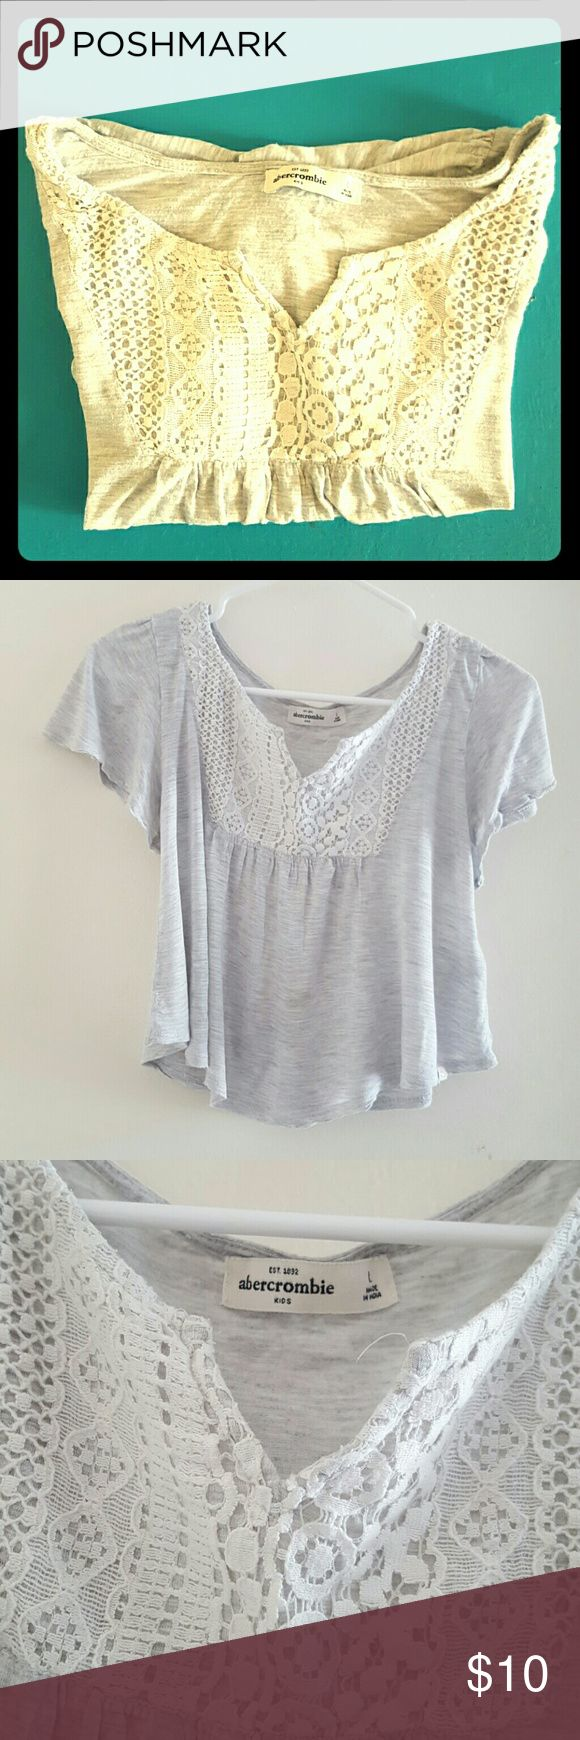 ABERCROMBIE Girls Crop Top Adorable Abercrombie kids crop top for girls. It's flowy with really cute lace detail at the top. It's a very light Heather gray and the lace is white. It's made from a nice thinner cotton blend. Perfect for those hot months! There's a little stain as seen in the photo but hardly noticeable. abercrombie kids Shirts & Tops Blouses